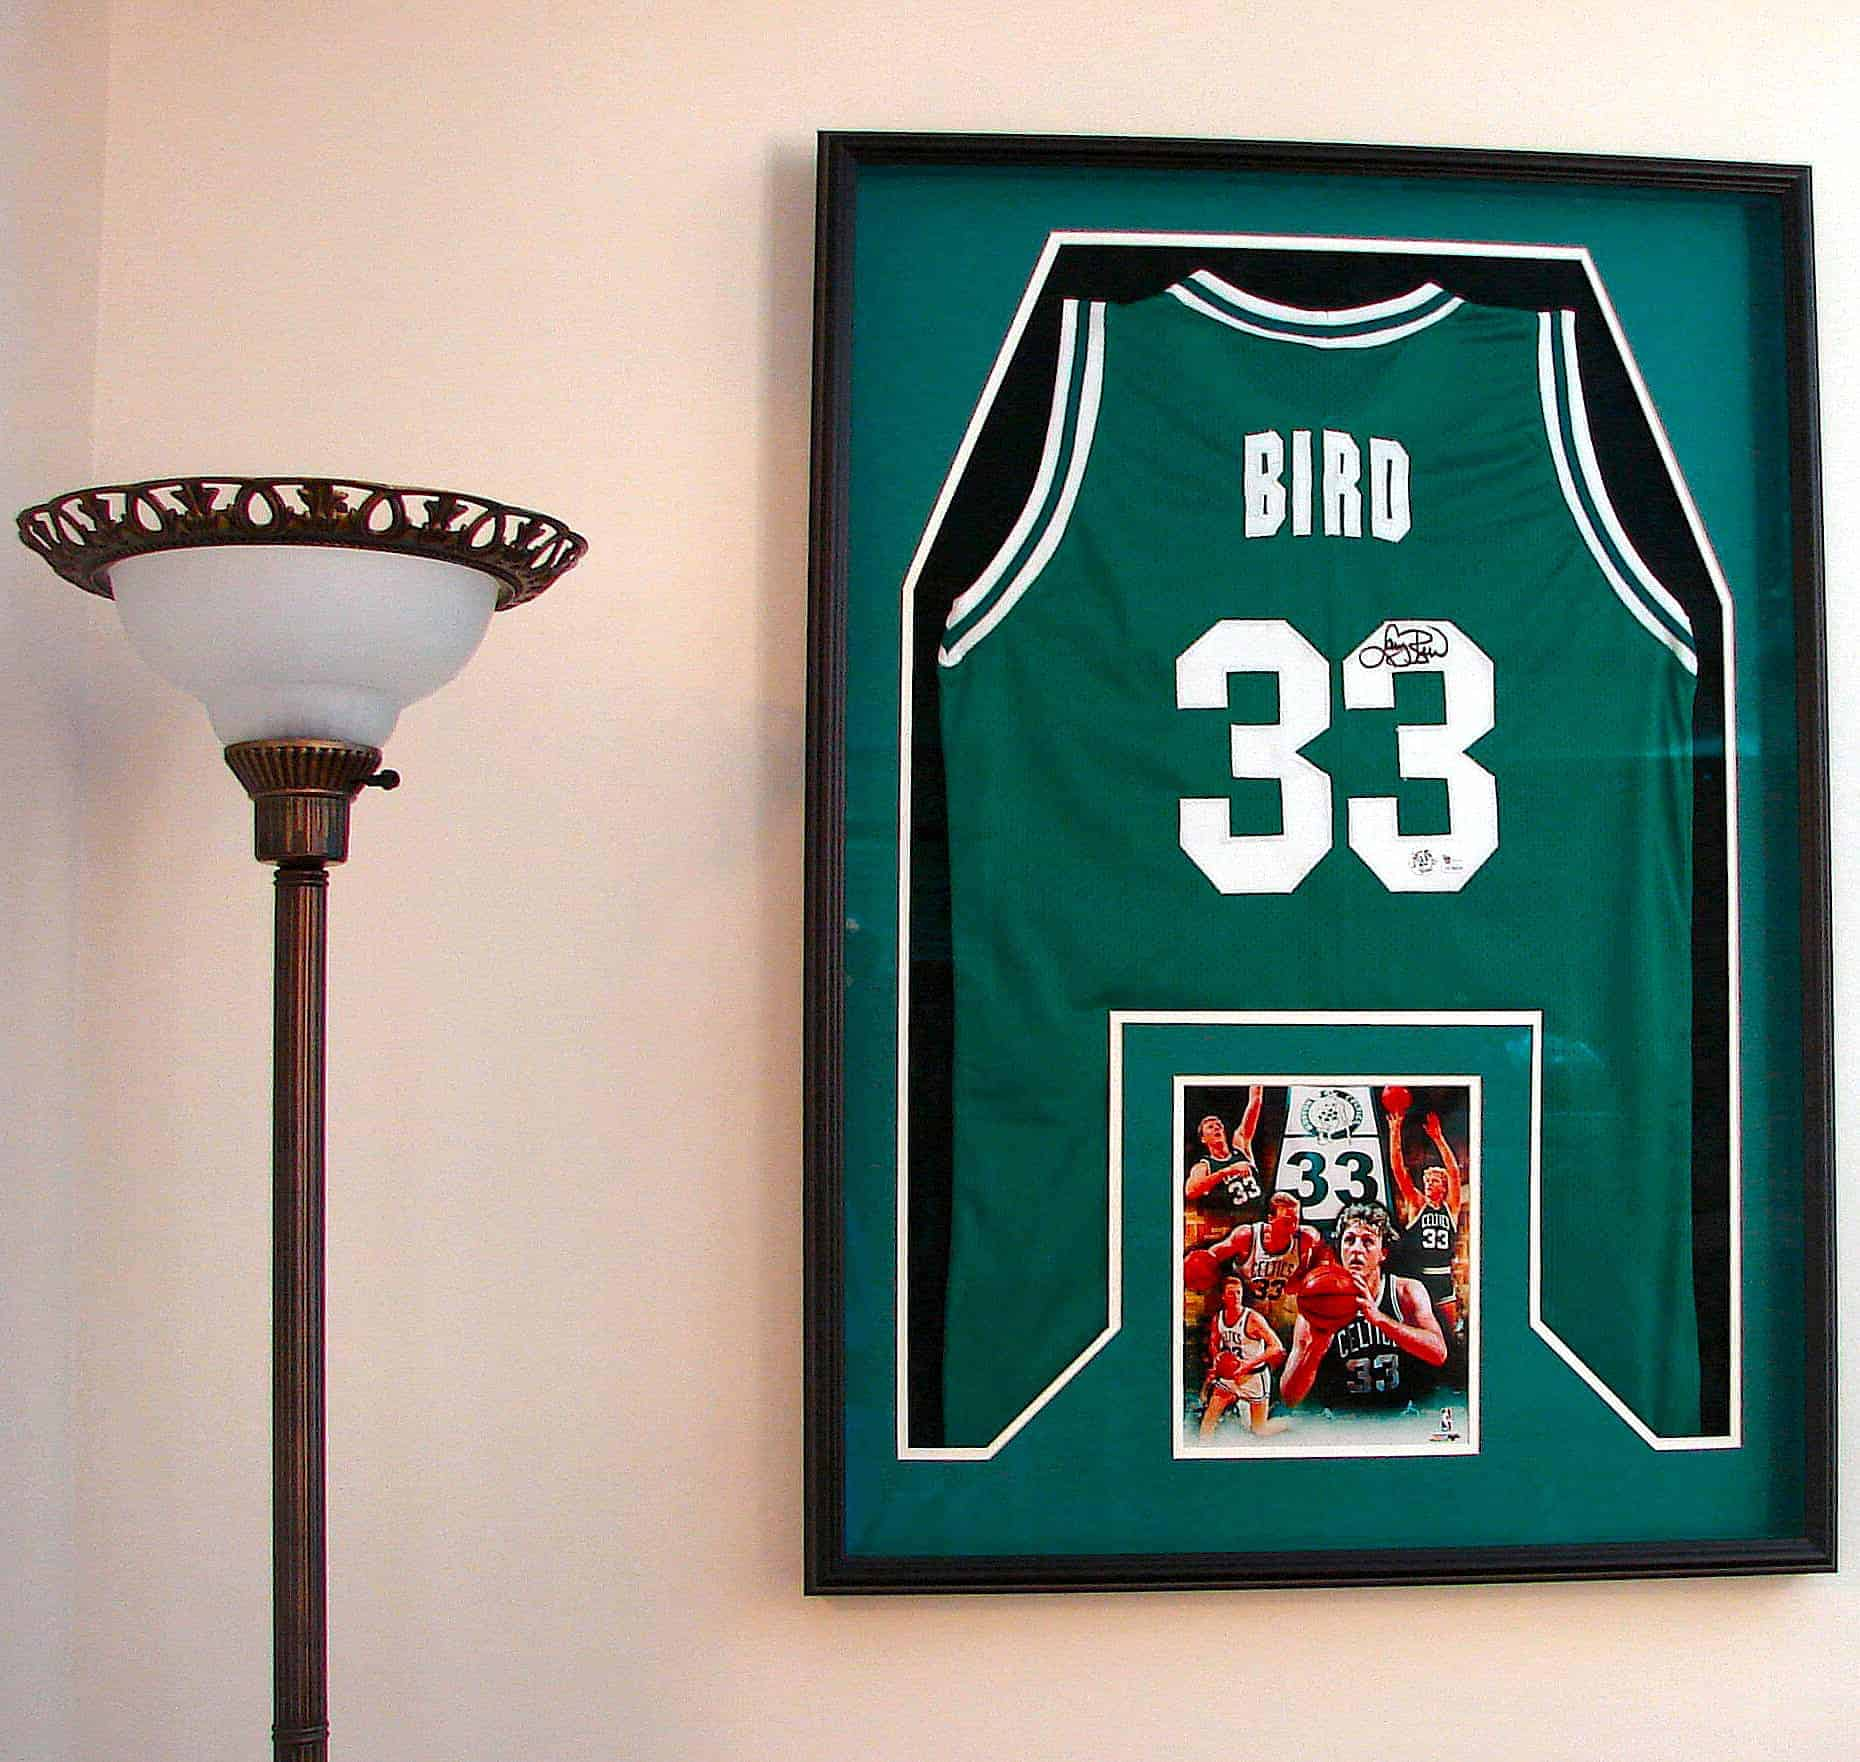 apartment decorating ideas that pay homage to your favorite sports team frame your jerseys